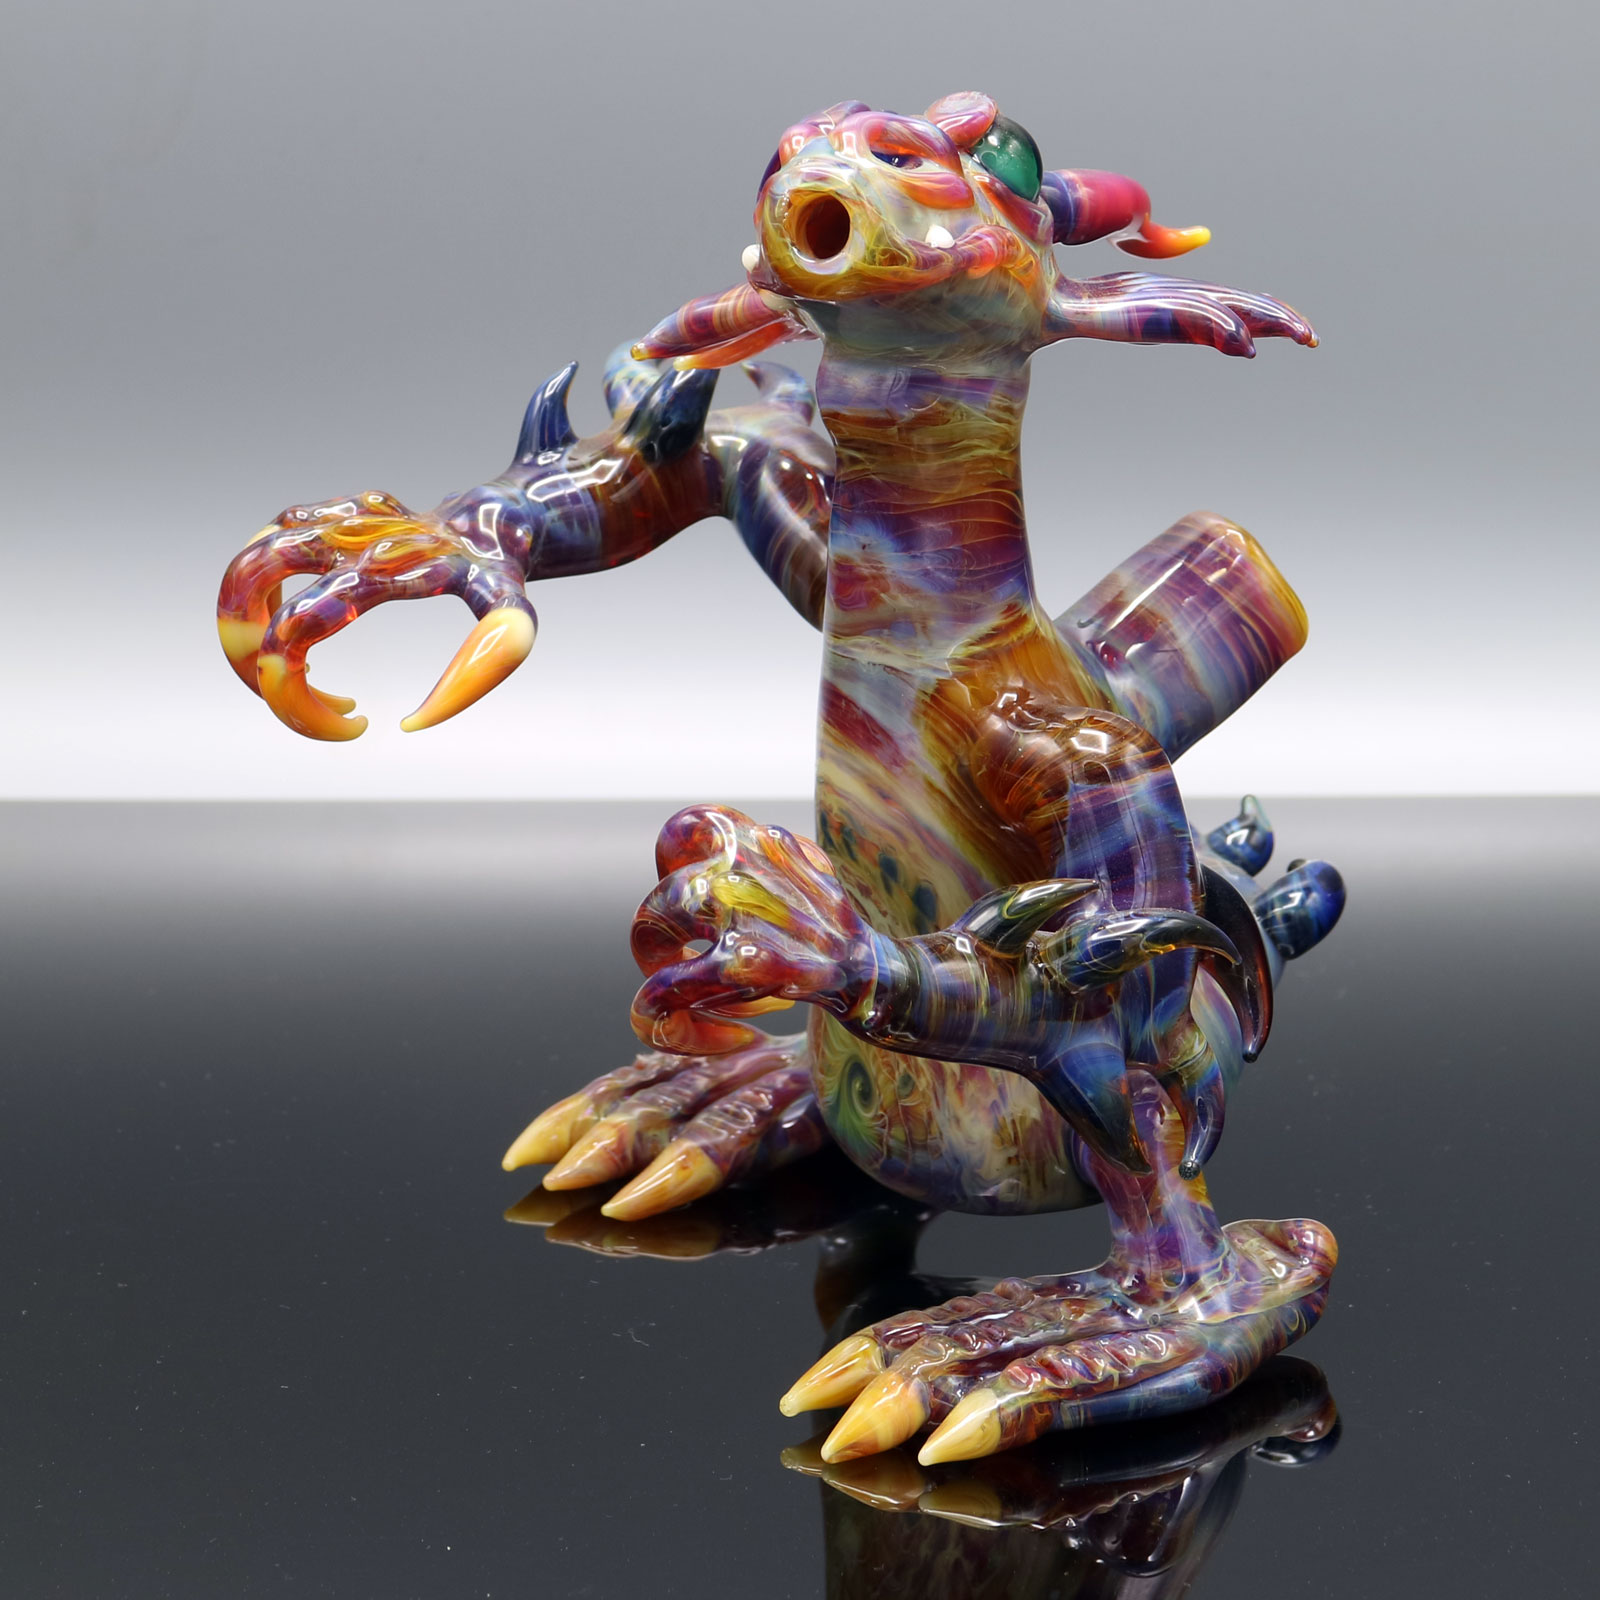 B-Hold X Broka Collab – Floki the Dragon